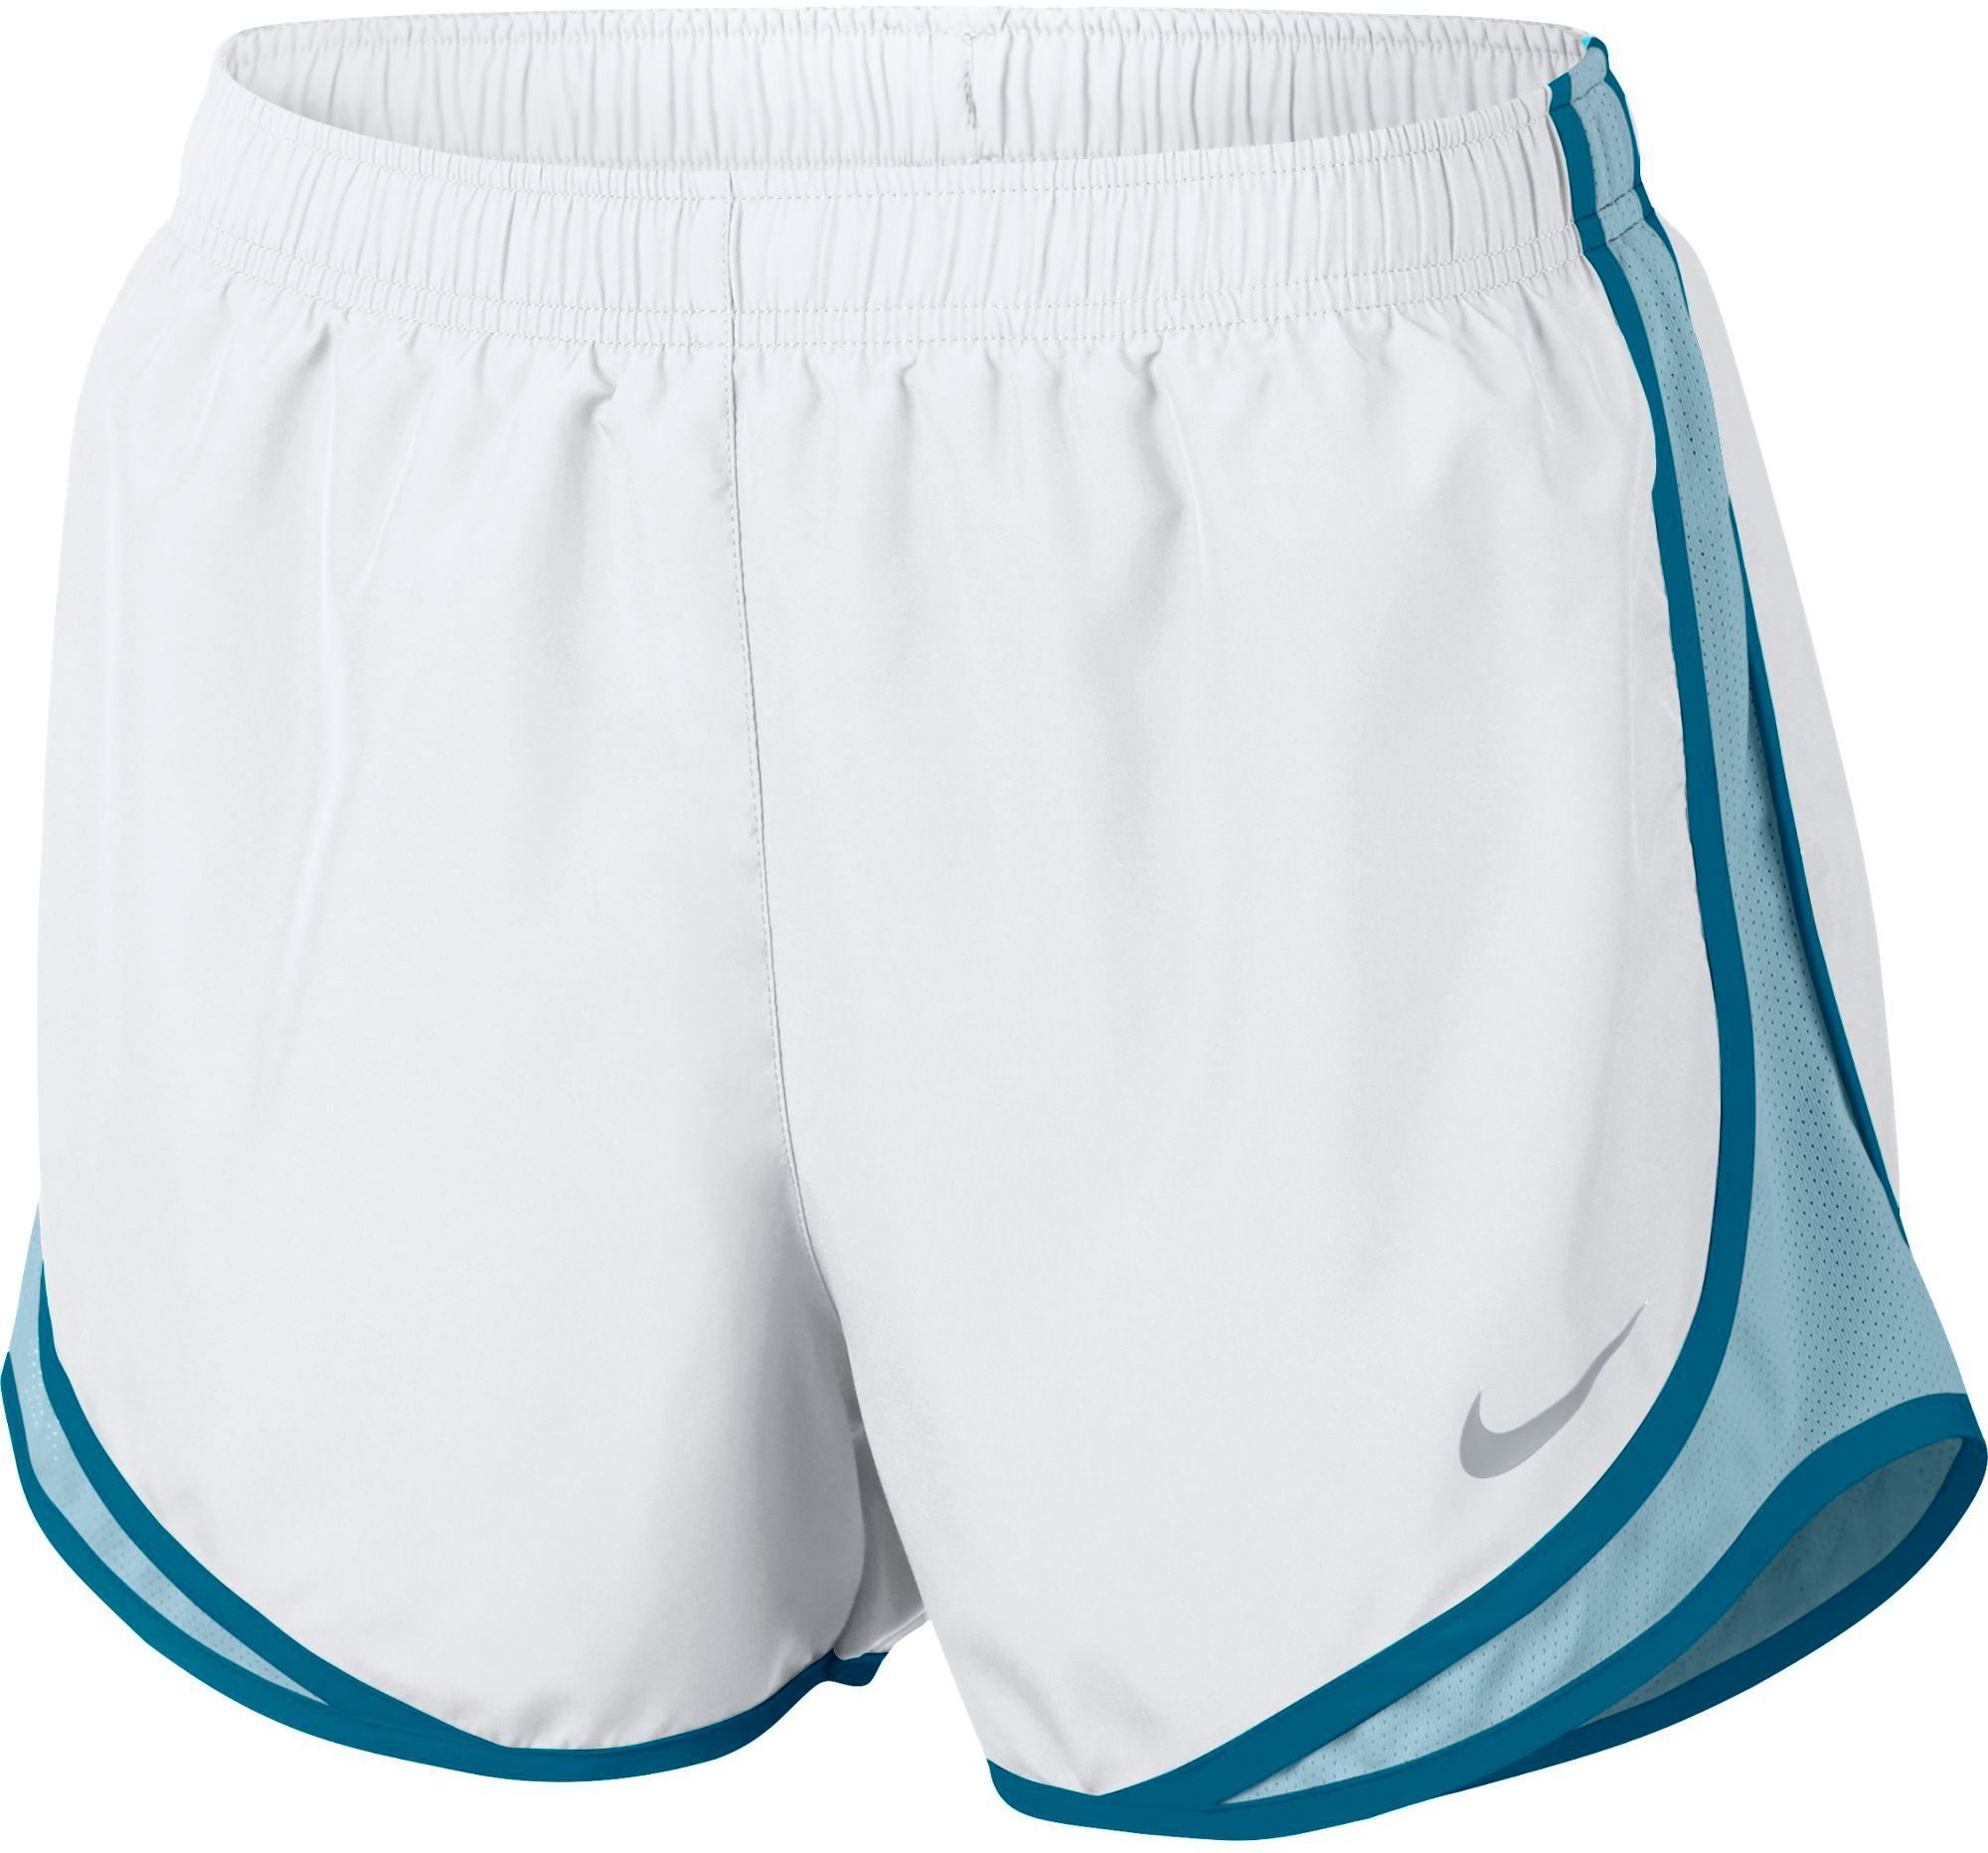 Nike Women's 3'' Dry Tempo Running Shorts, Size Small